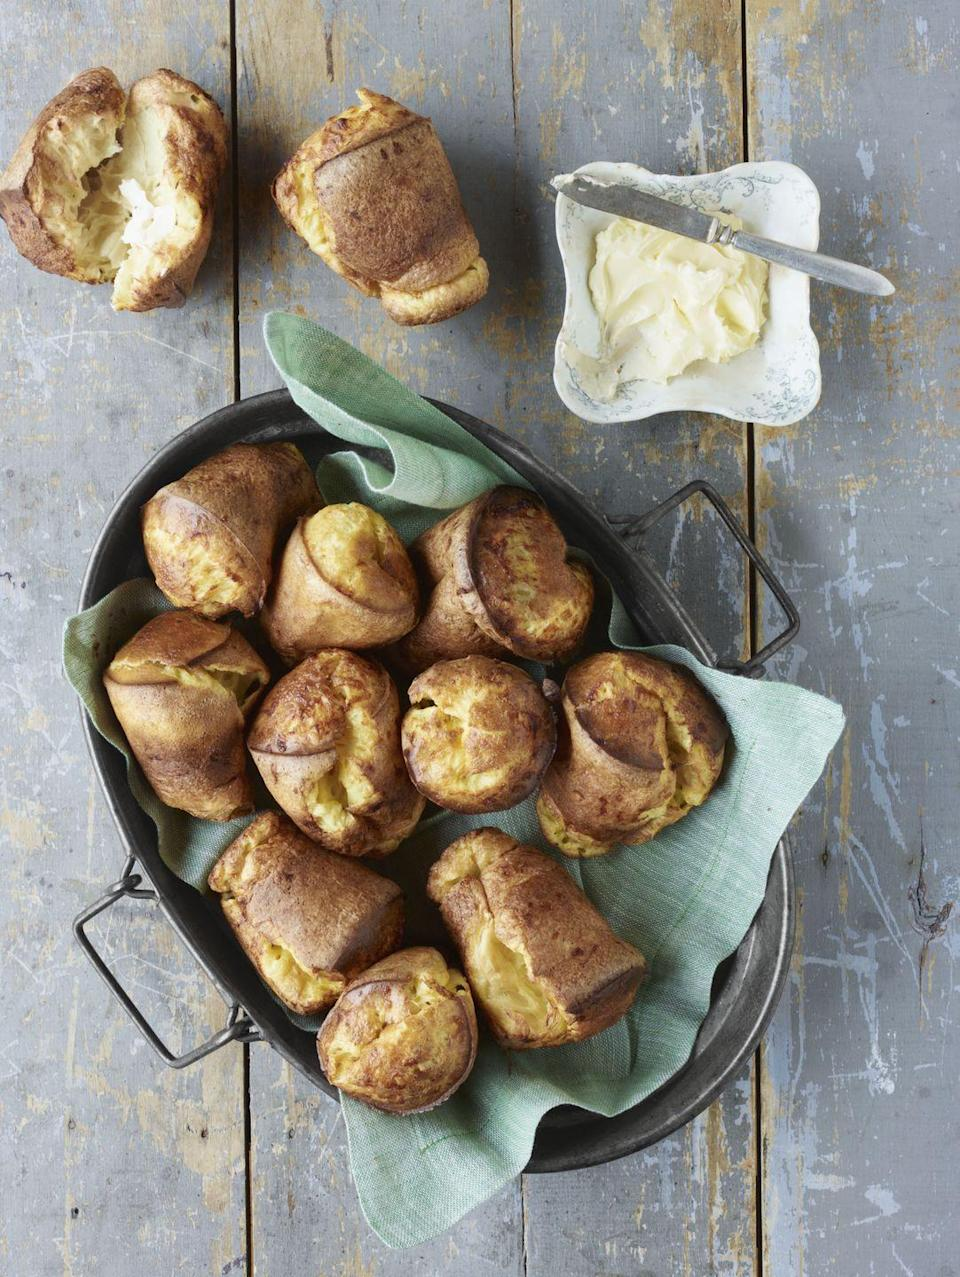 "<p>Consider these melt-in-your-mouth delights one of life's little luxuries—no rising or rolling necessary.</p><p><strong><a href=""https://www.countryliving.com/food-drinks/recipes/a4149/cheddar-popovers-recipe-clv0413/"" rel=""nofollow noopener"" target=""_blank"" data-ylk=""slk:Get the recipe"" class=""link rapid-noclick-resp"">Get the recipe</a>.</strong></p><p><a class=""link rapid-noclick-resp"" href=""https://www.amazon.com/Bellemain-Cup-Nonstick-Popover-Pan/dp/B00WX9KKTW/?tag=syn-yahoo-20&ascsubtag=%5Bartid%7C10050.g.738%5Bsrc%7Cyahoo-us"" rel=""nofollow noopener"" target=""_blank"" data-ylk=""slk:SHOP POPOVER PANS"">SHOP POPOVER PANS</a><br></p>"